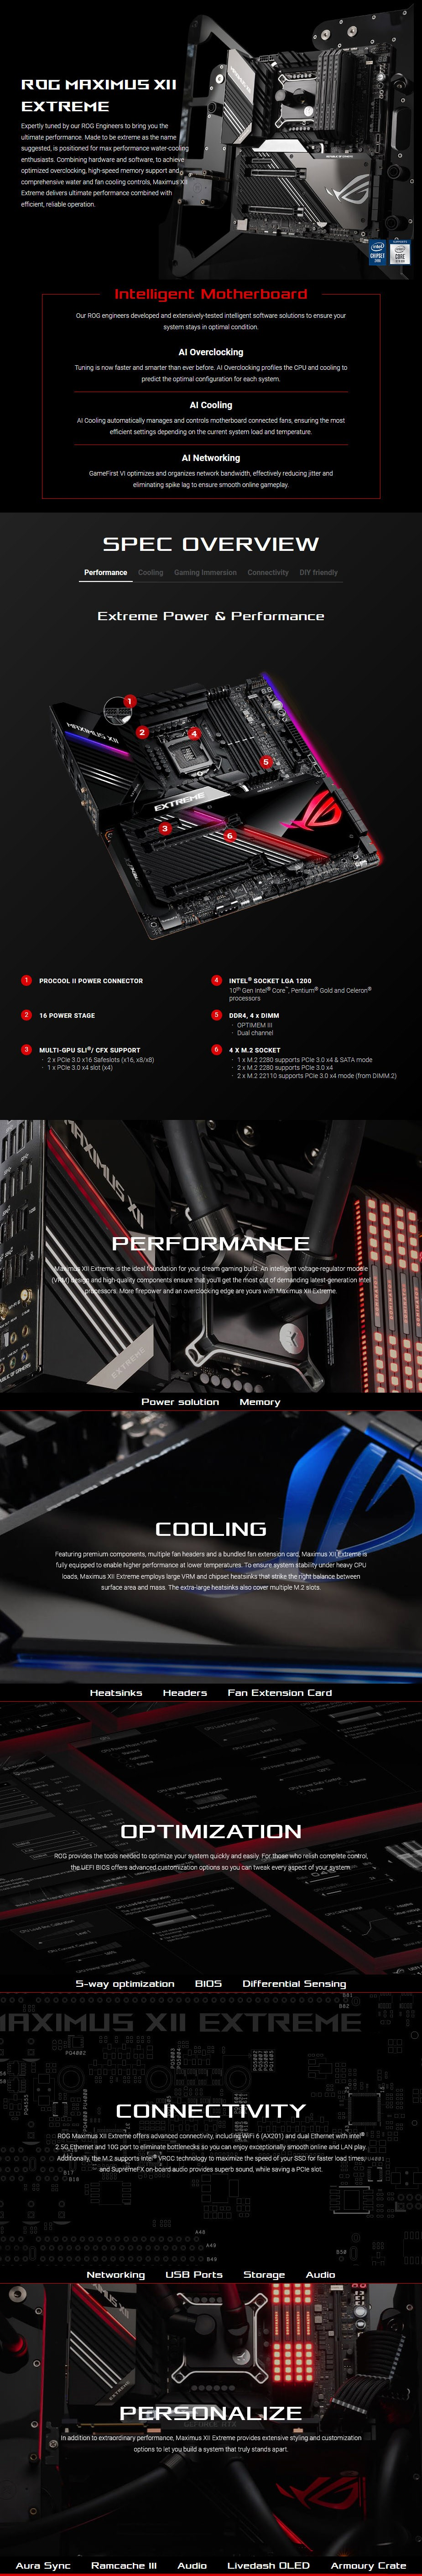 ASUS ROG Z490 MAXIMUS XII EXTREME LGA 1200 E-ATX Motherboard - Overview 1